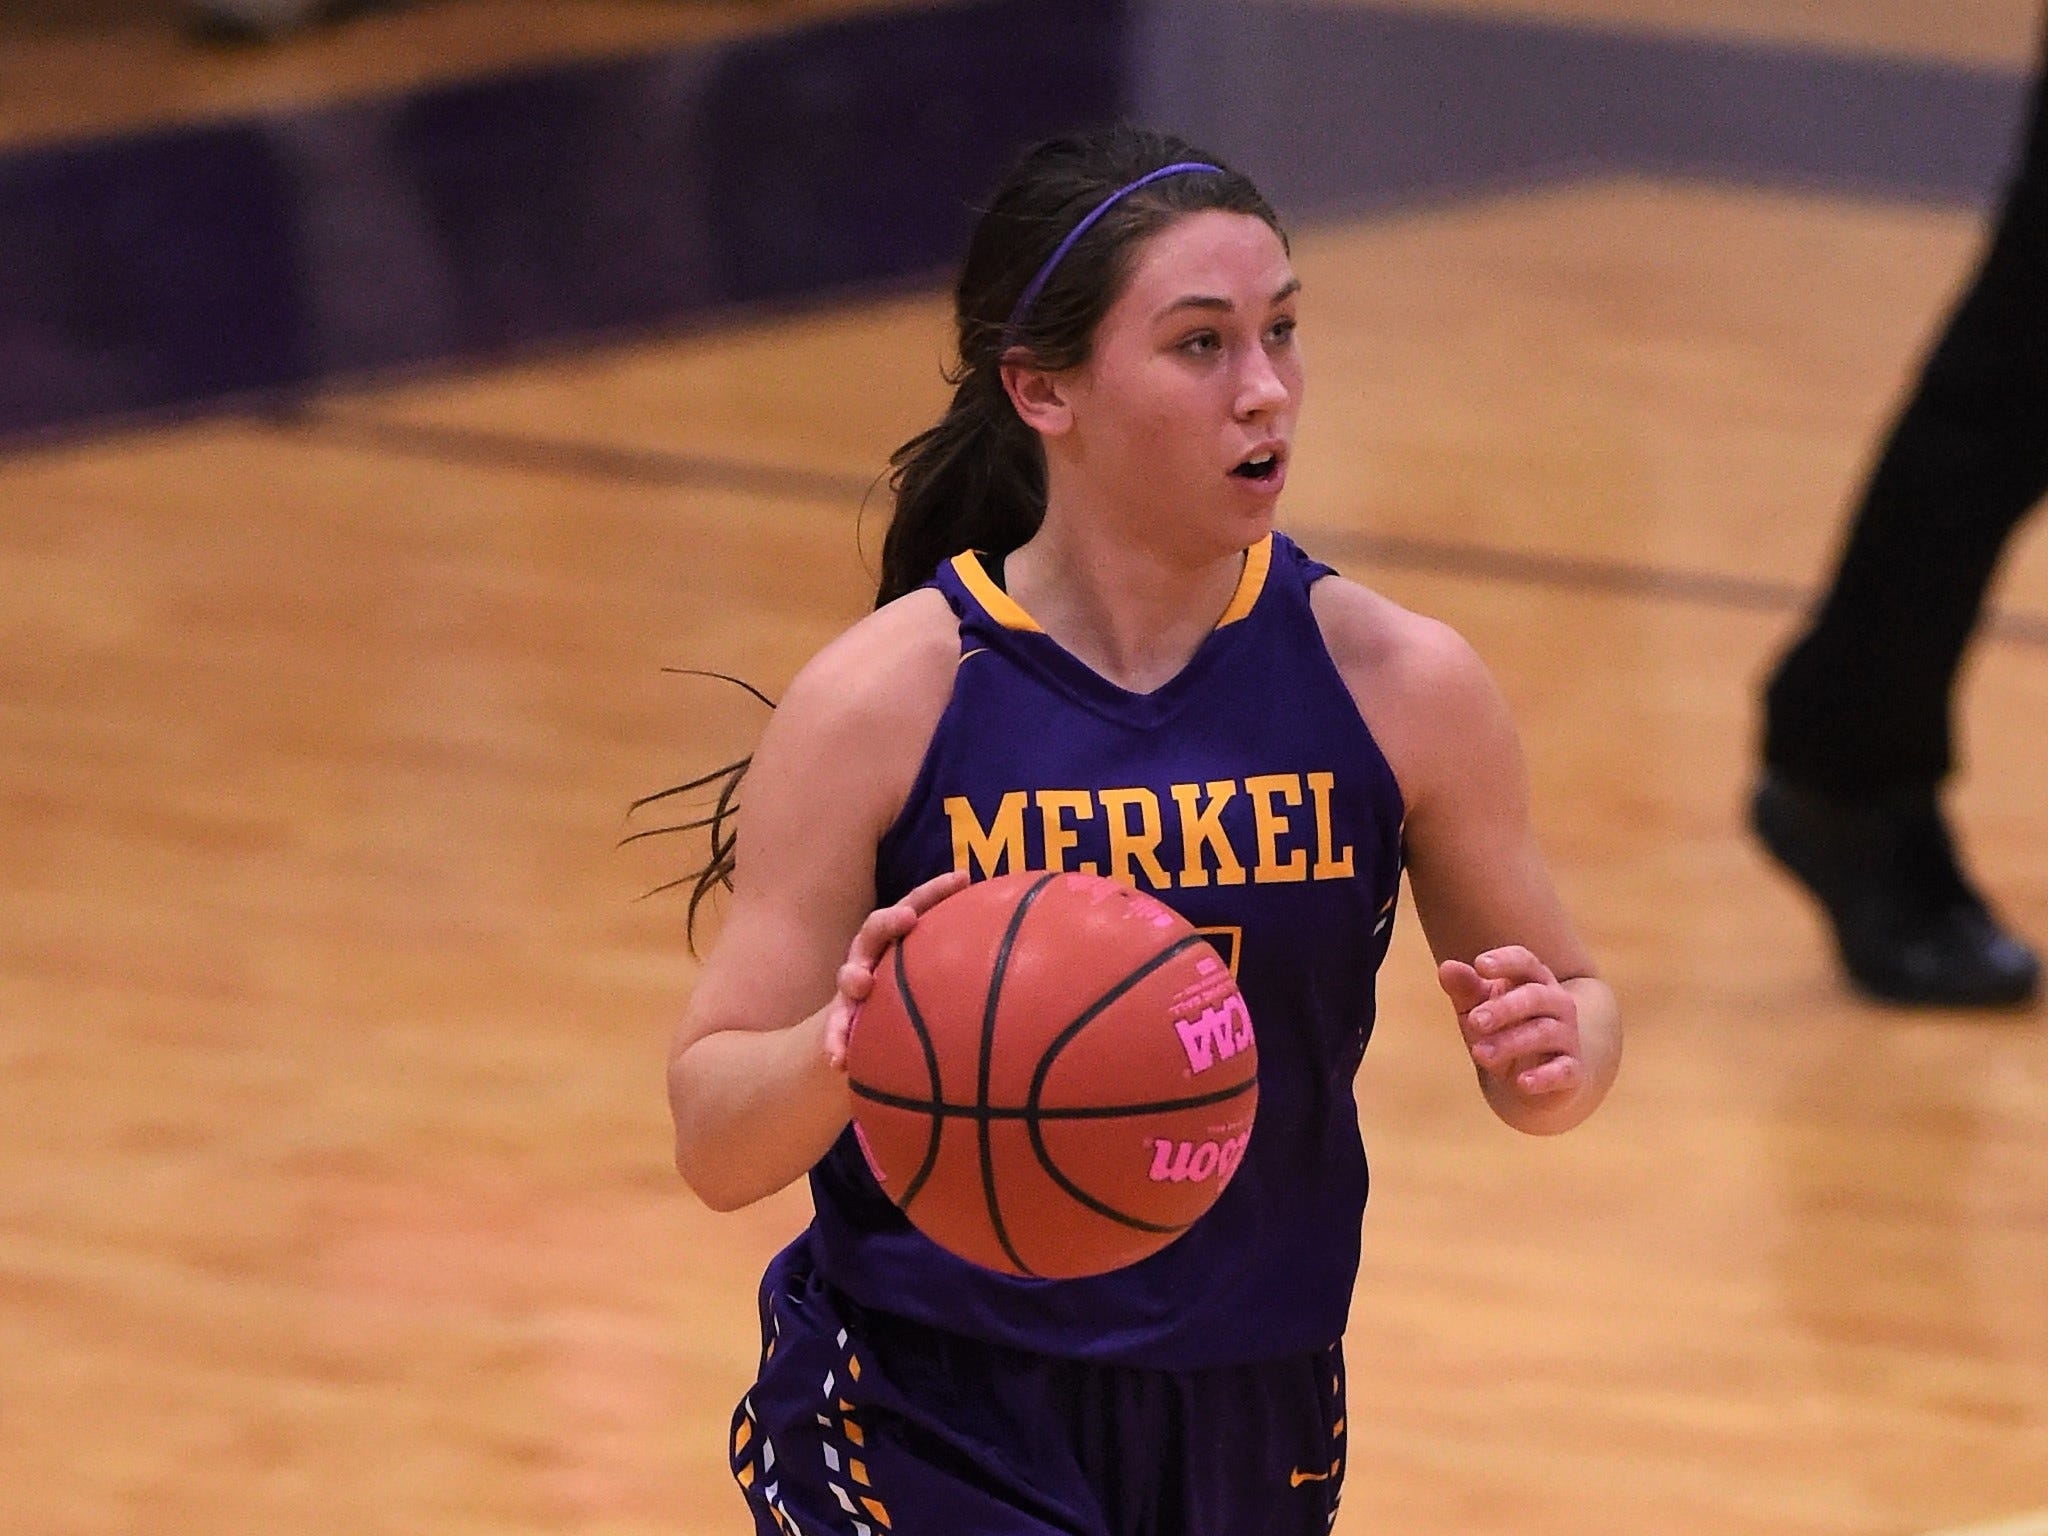 Merkel's Kaydi Pursley (11) brings the ball down court against Wylie in the Coaches vs. Cancer Pink Out game on Tuesday, Dec. 4, 2018. The Lady Bulldogs won 75-39.